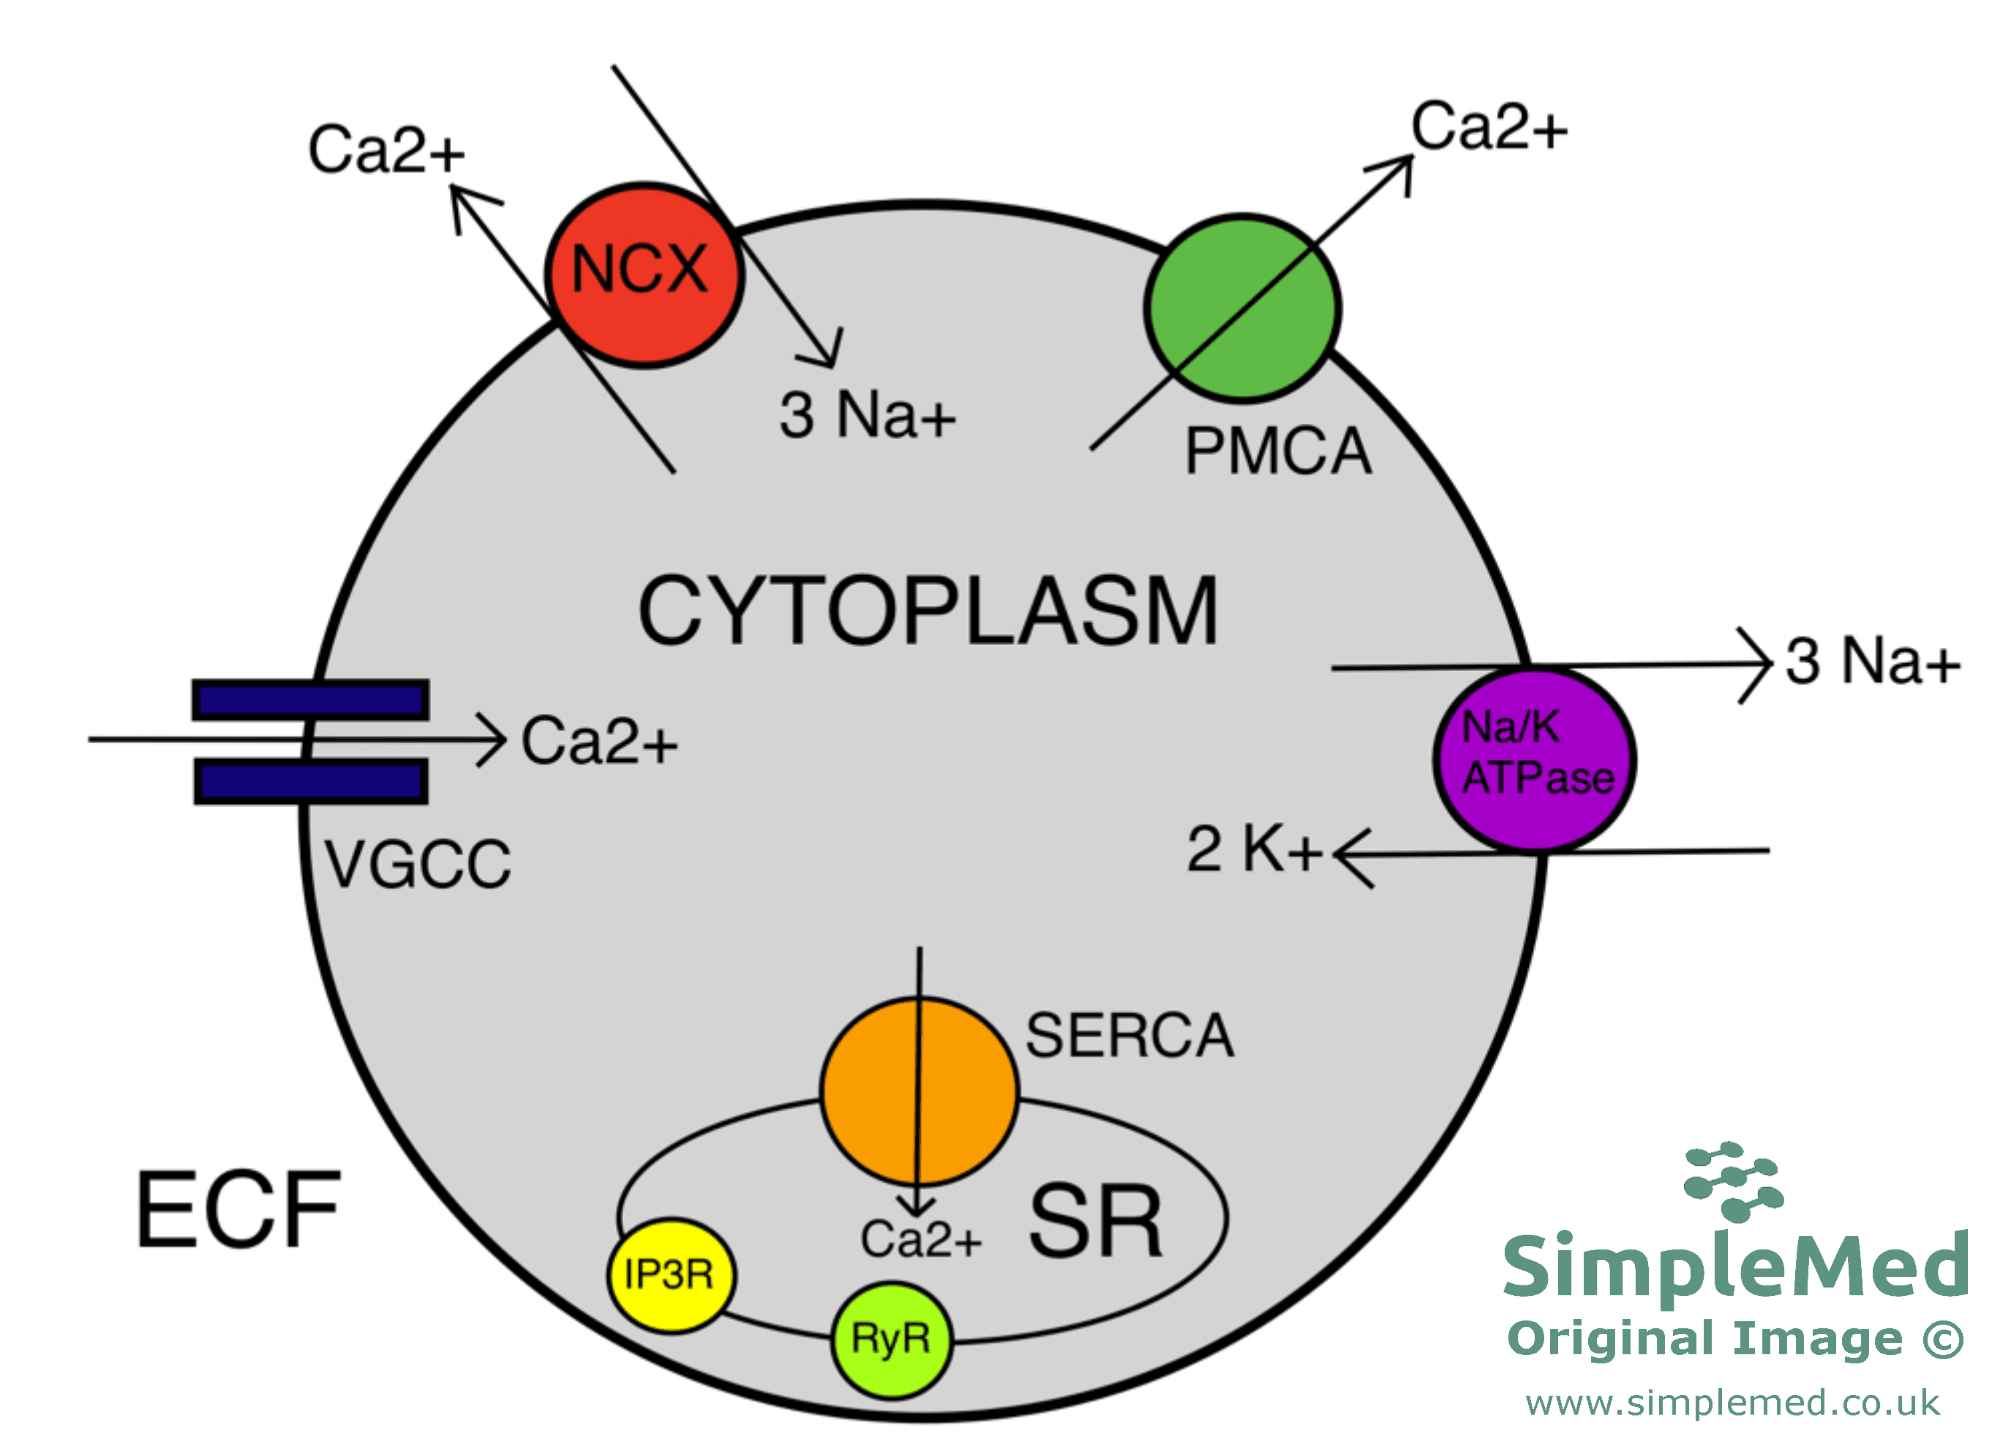 Summary of the Cellular Calcium Ion Regulation SimpleMed